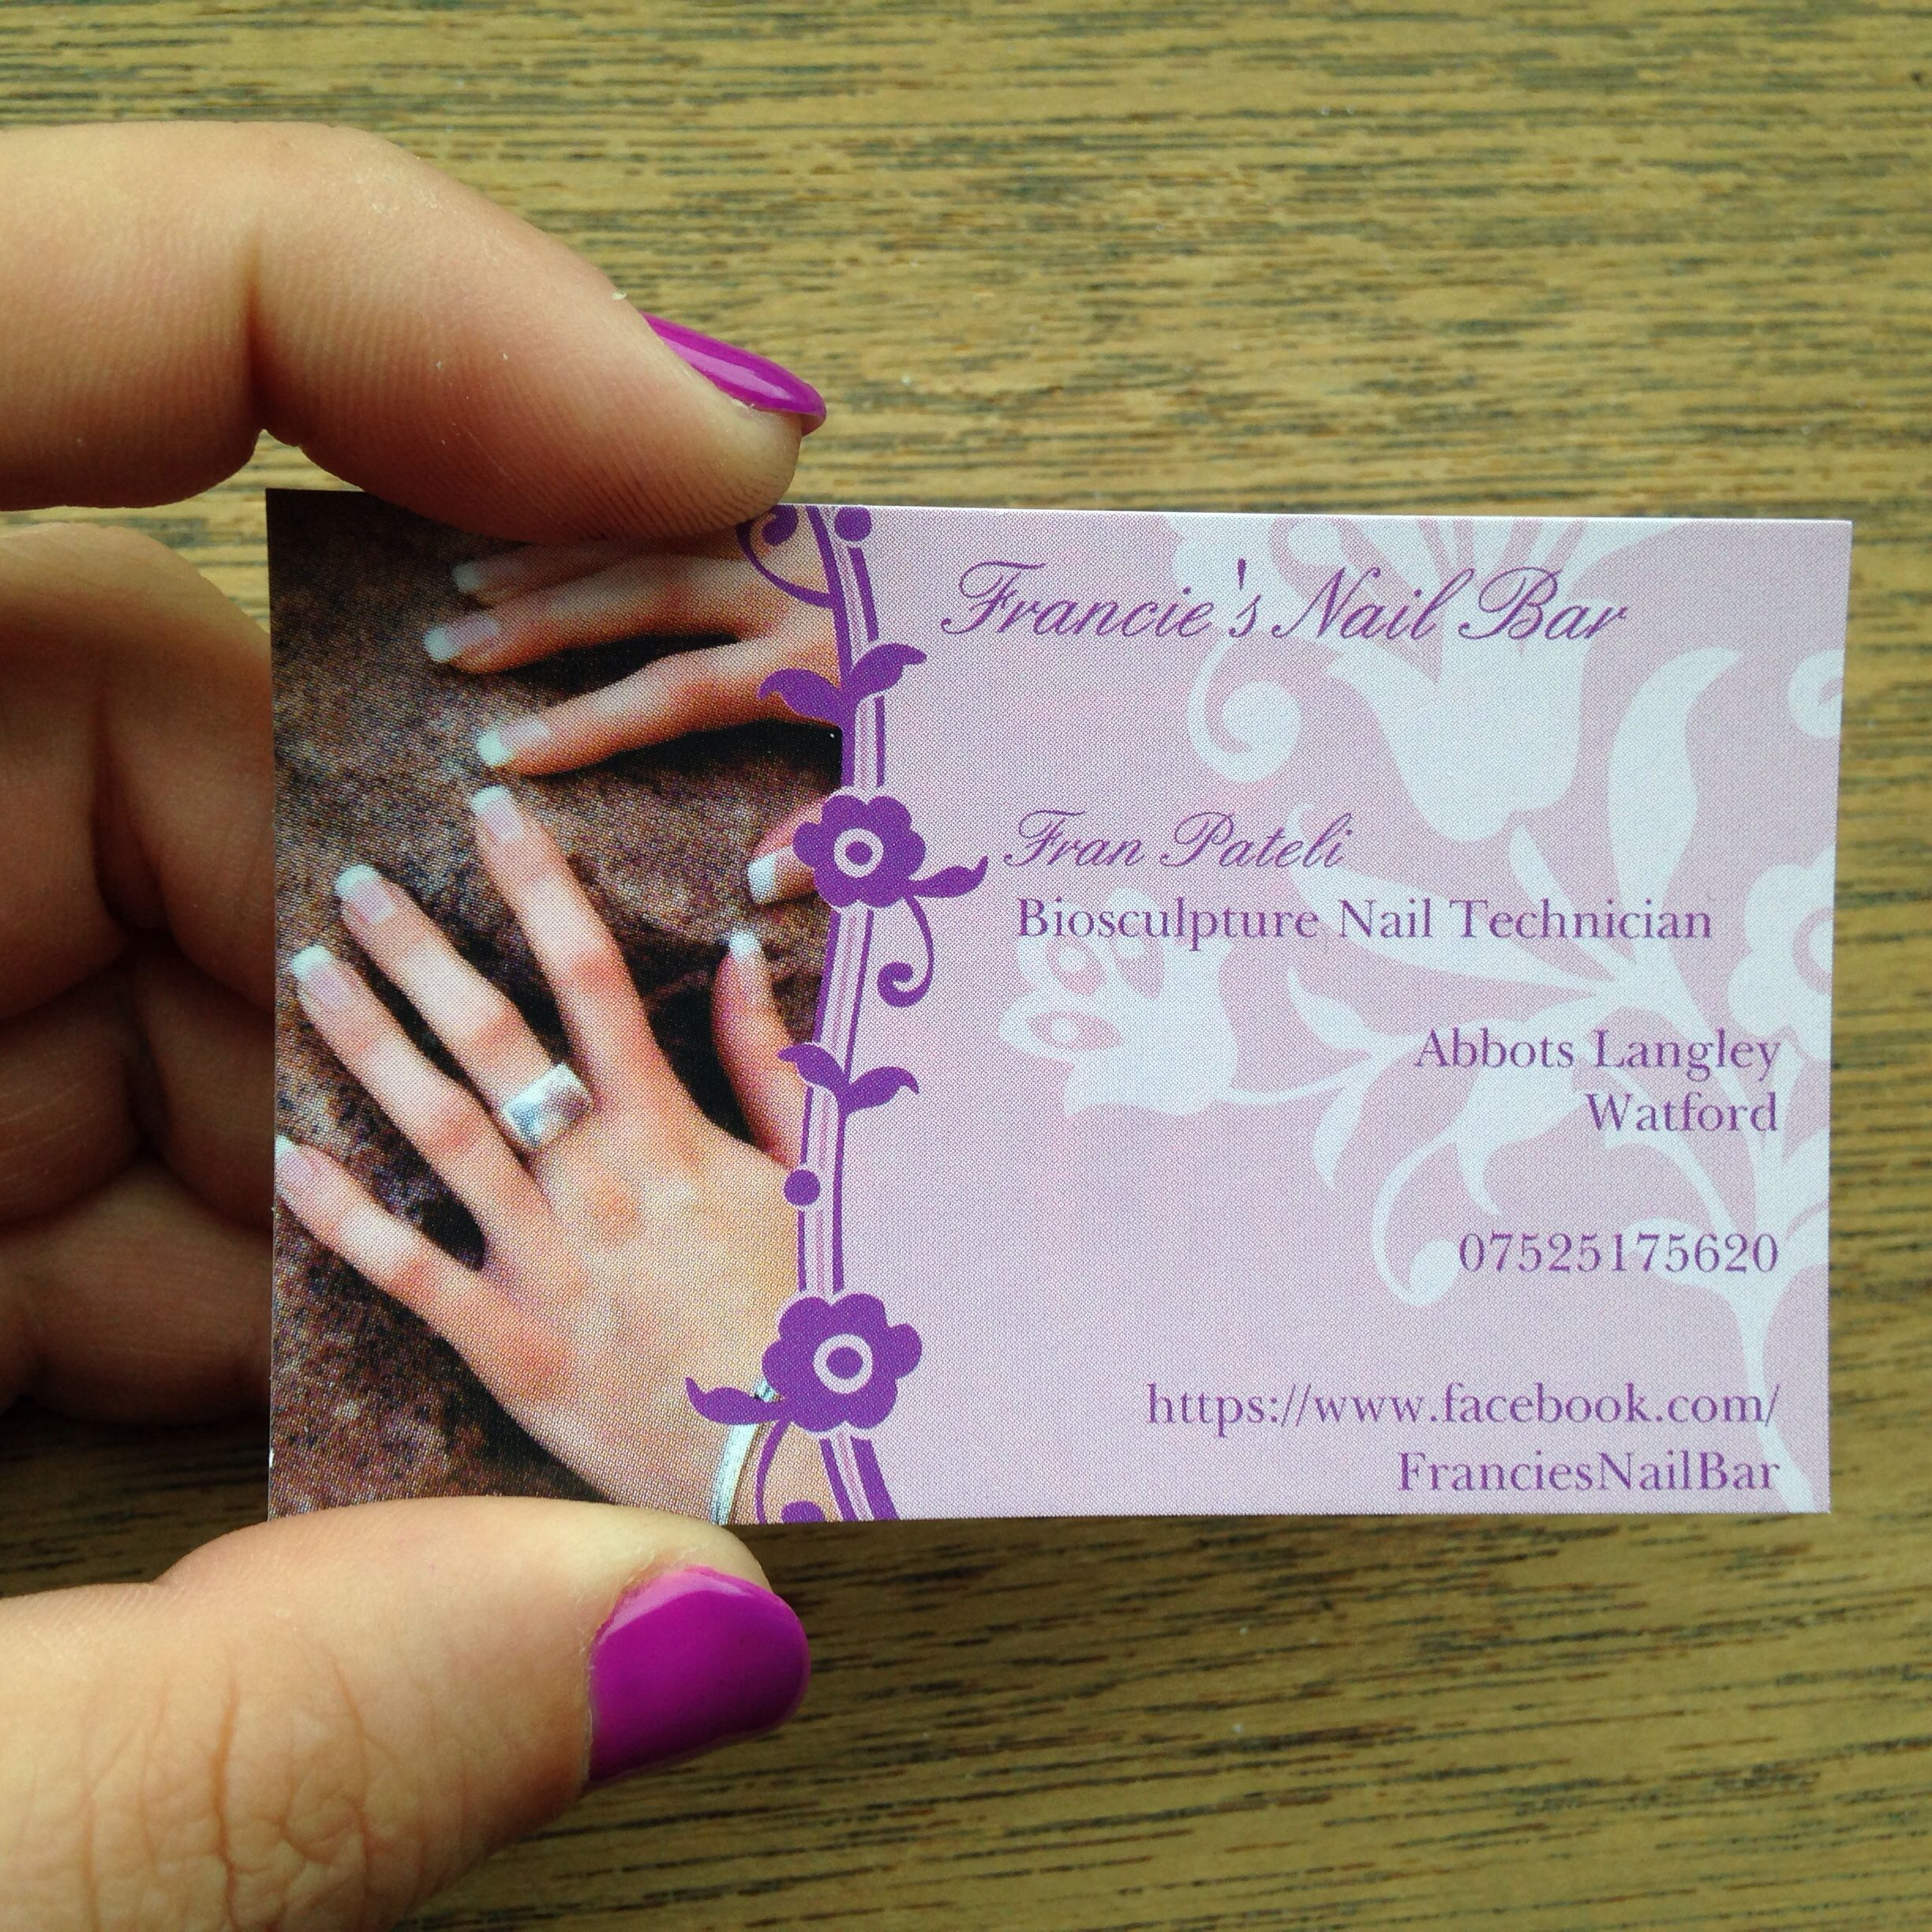 My Business Card #nails #business #BioSculpture #gels #qualified ...